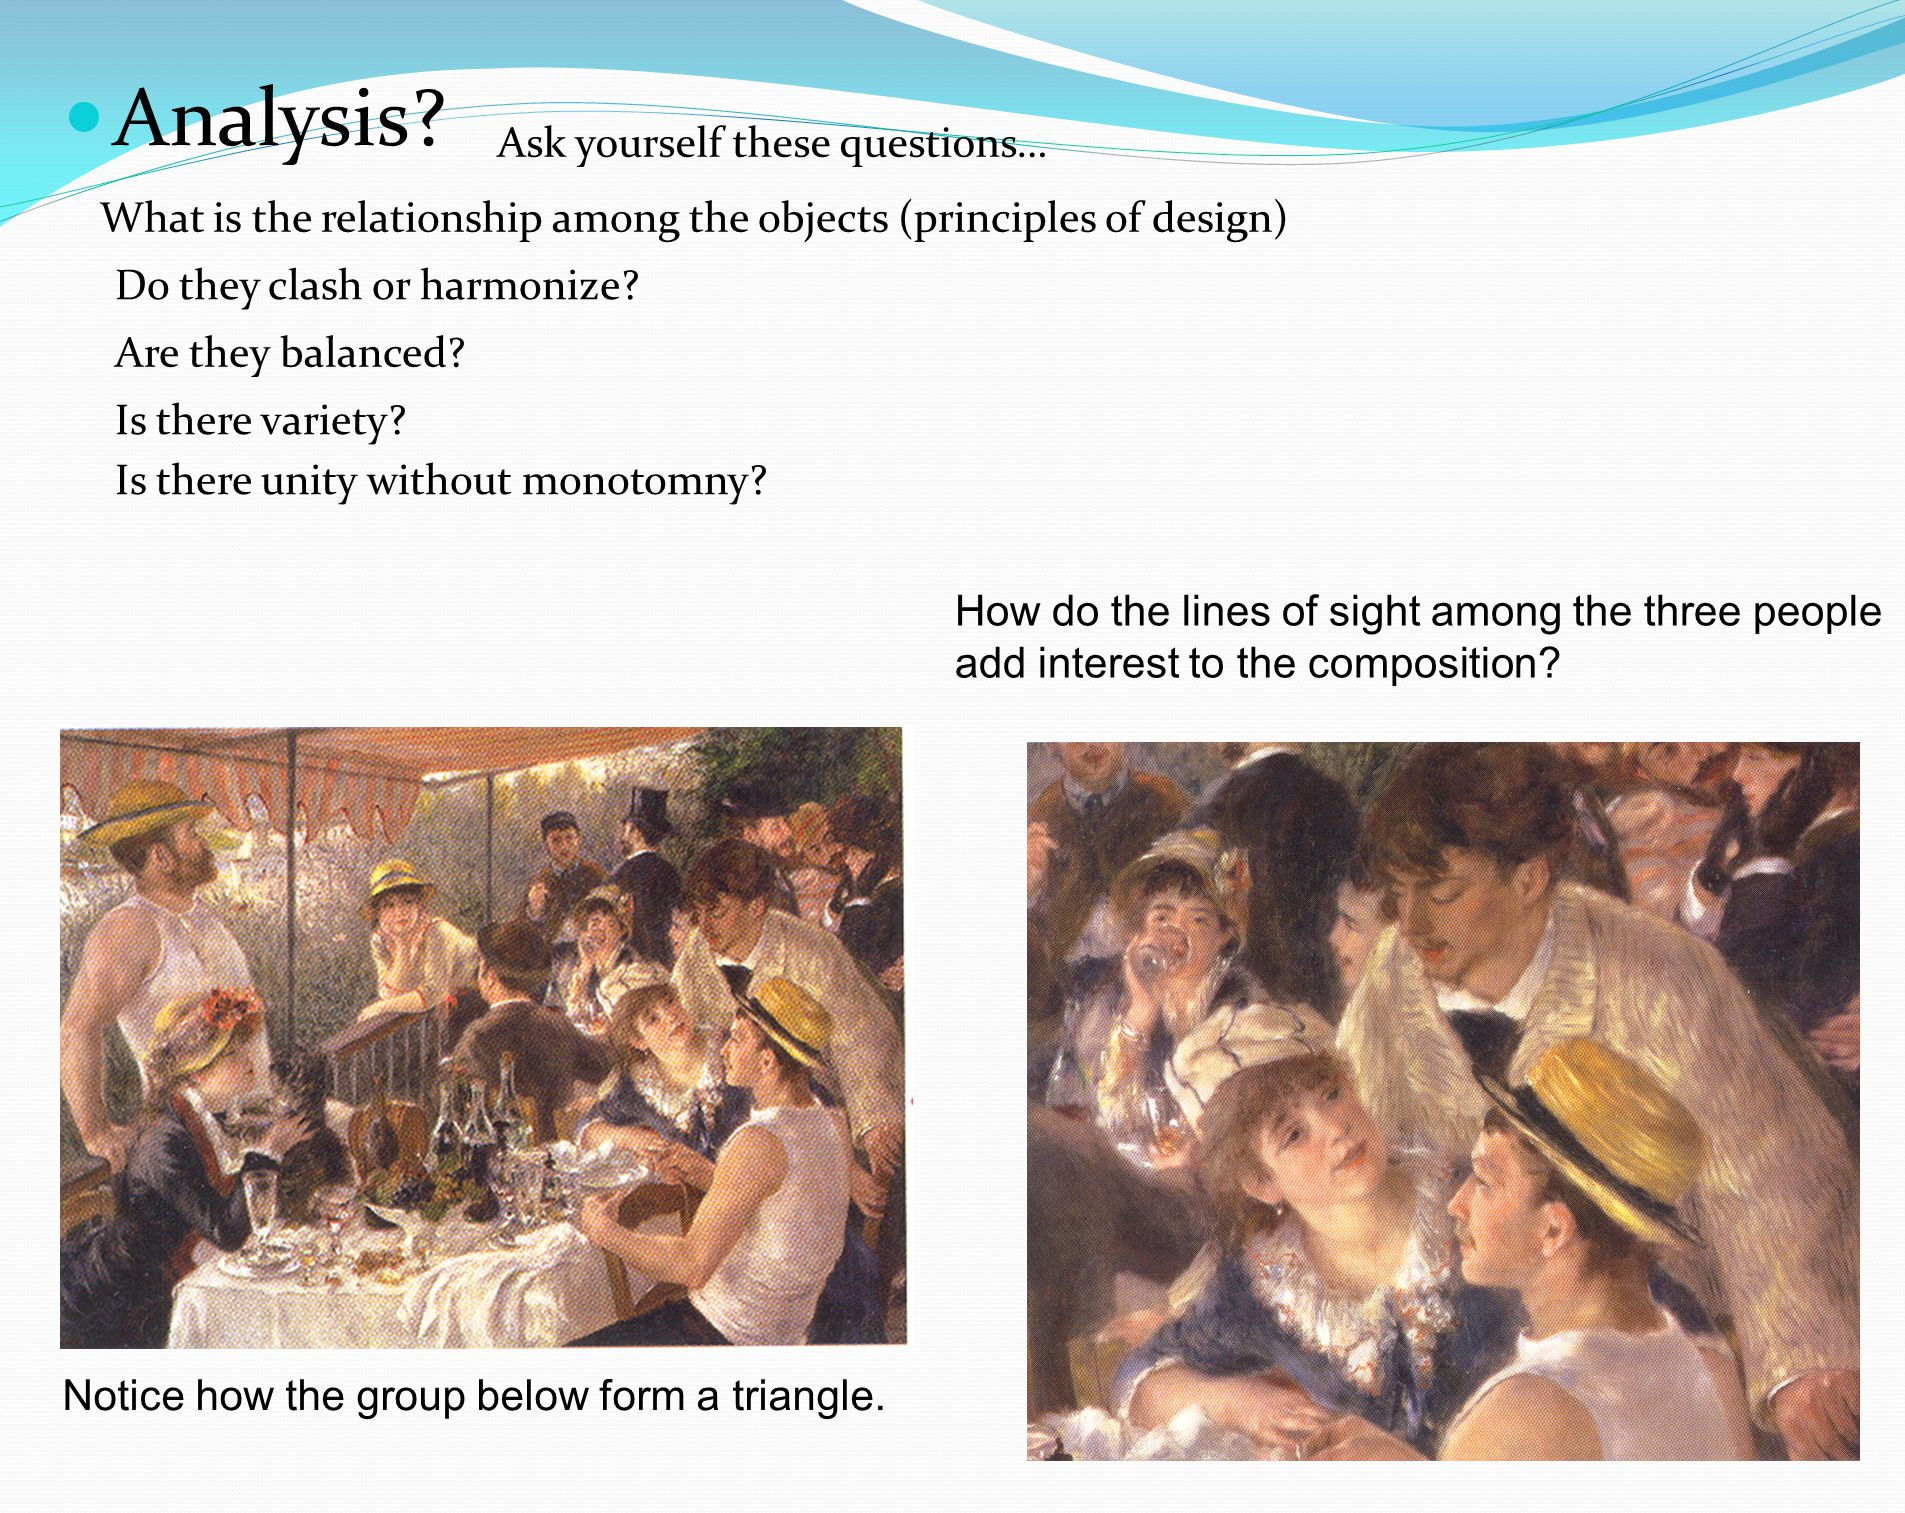 Art criticism a systematic discussion of the characteristics of an art work, usually involving four stages: description analysis interpretation and judgment What will you be describing as you analyze the composition of an artwork.